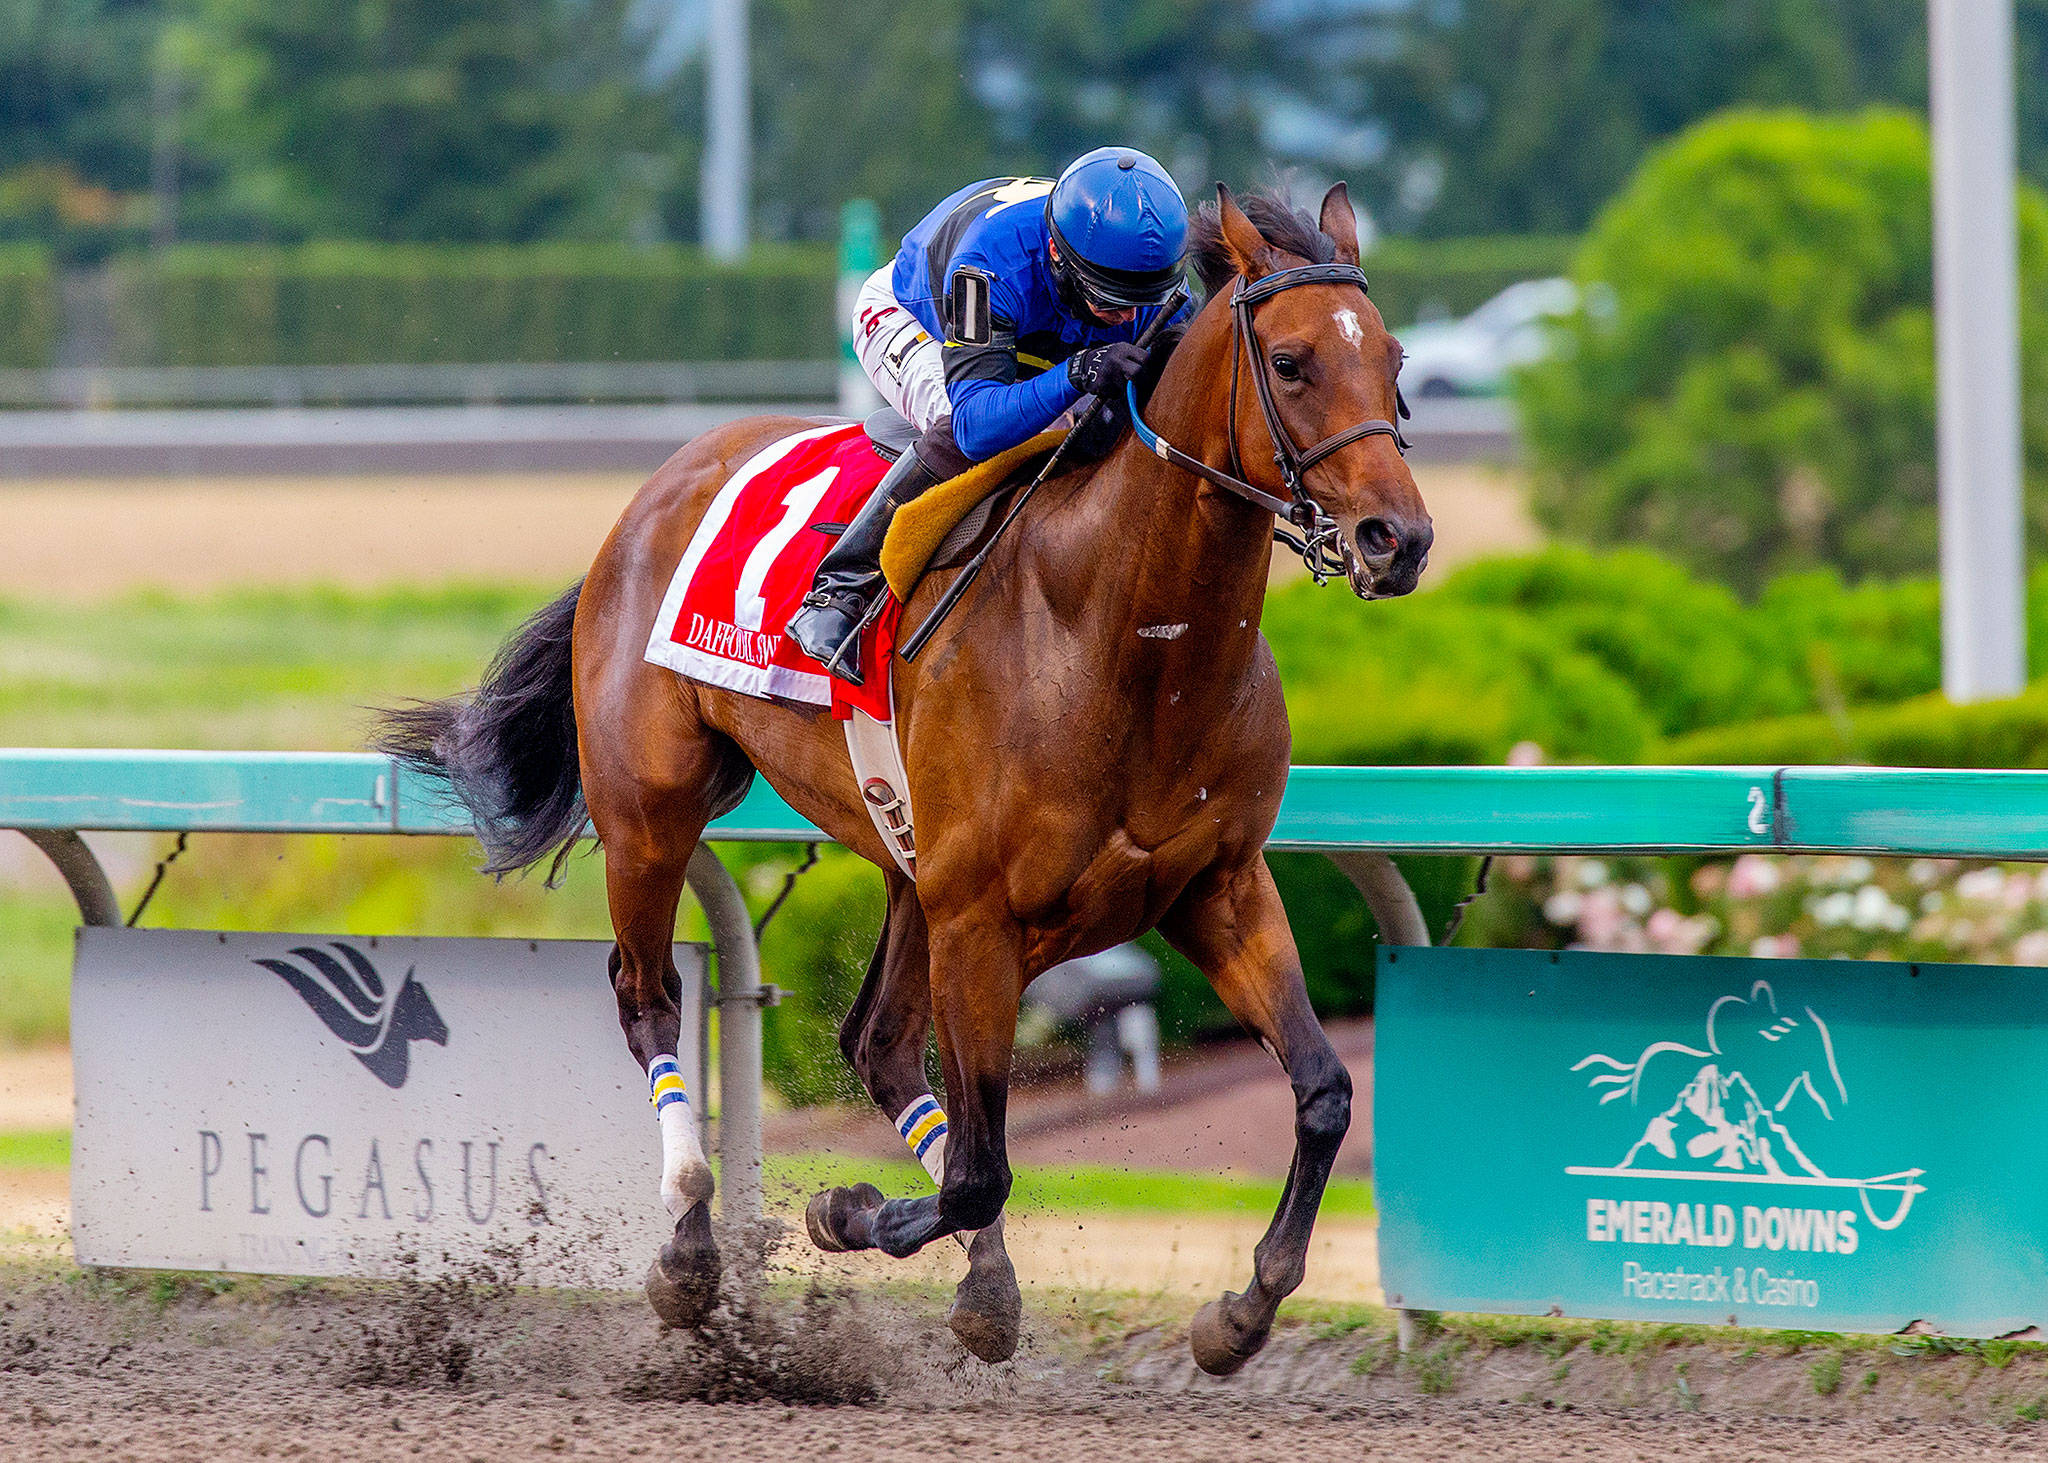 Daffodil Sweet, last year's champion 3-year-old filly, will be in action this week at Emerald Downs. (Photo courtesy of Emerald Downs)